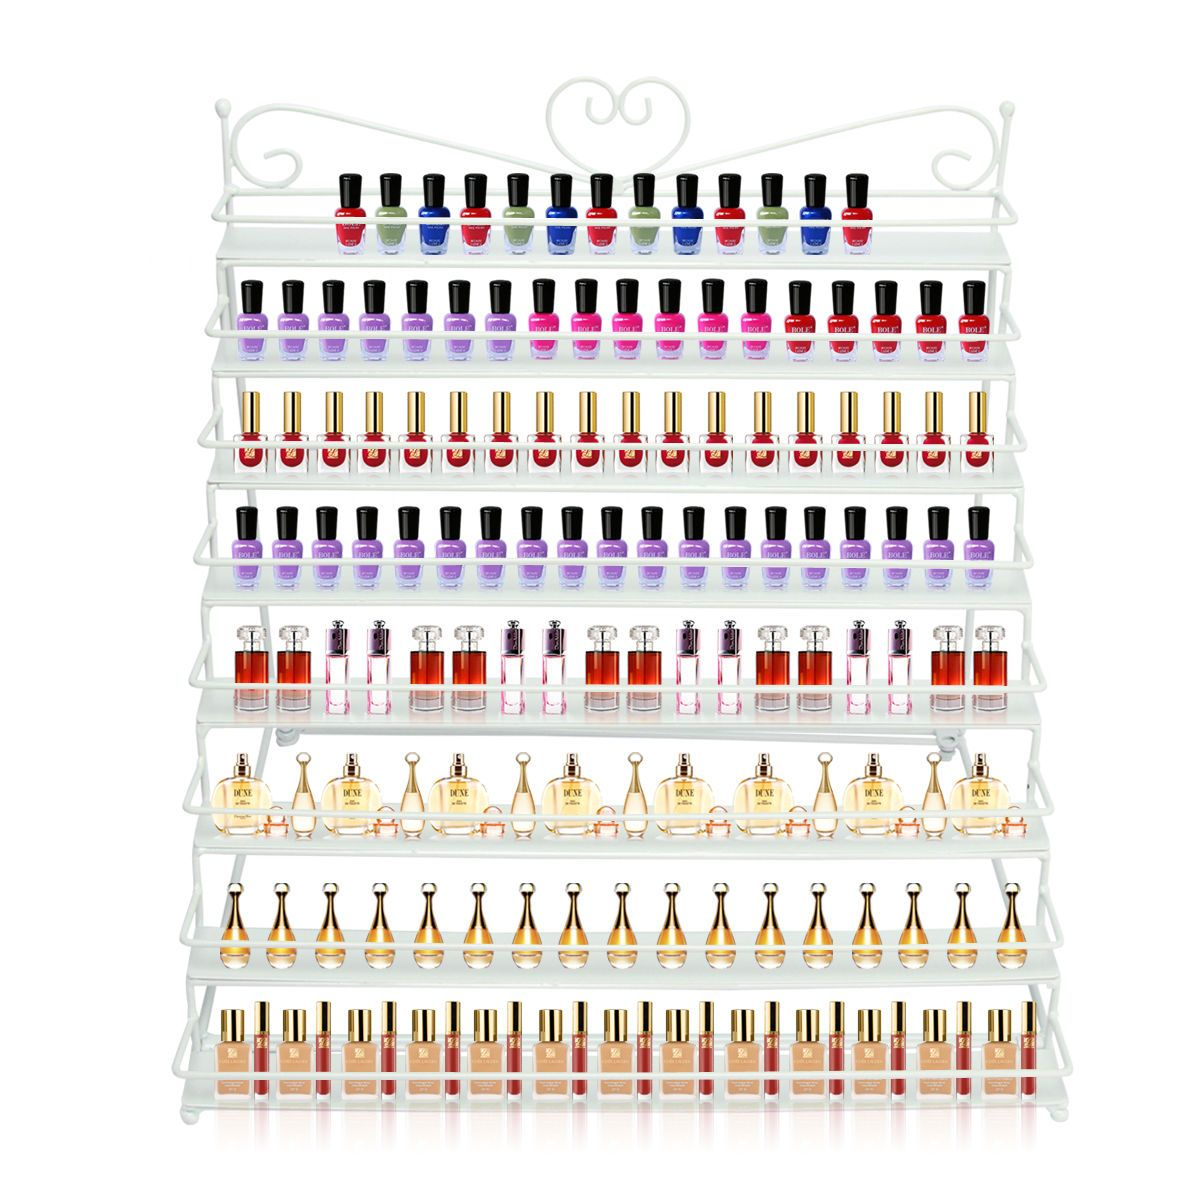 8 TIER Nail Polish Rack Organizer Stand Holder (Hold to 100+ Bottles ...